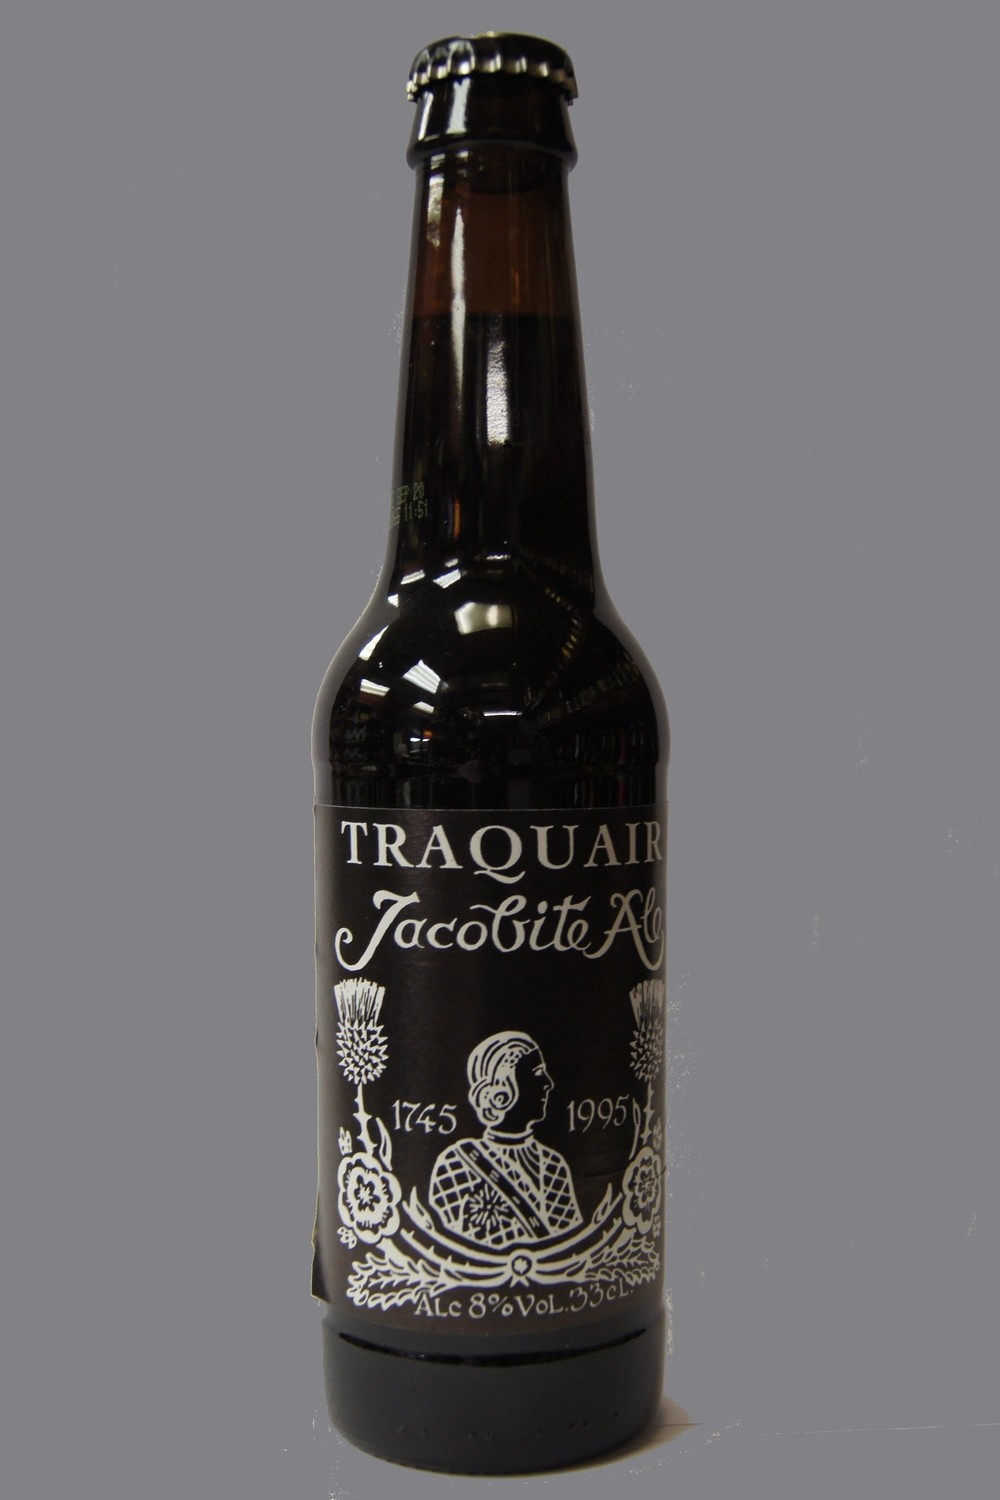 TRAQUAIR-Jacobite Ale.jpg